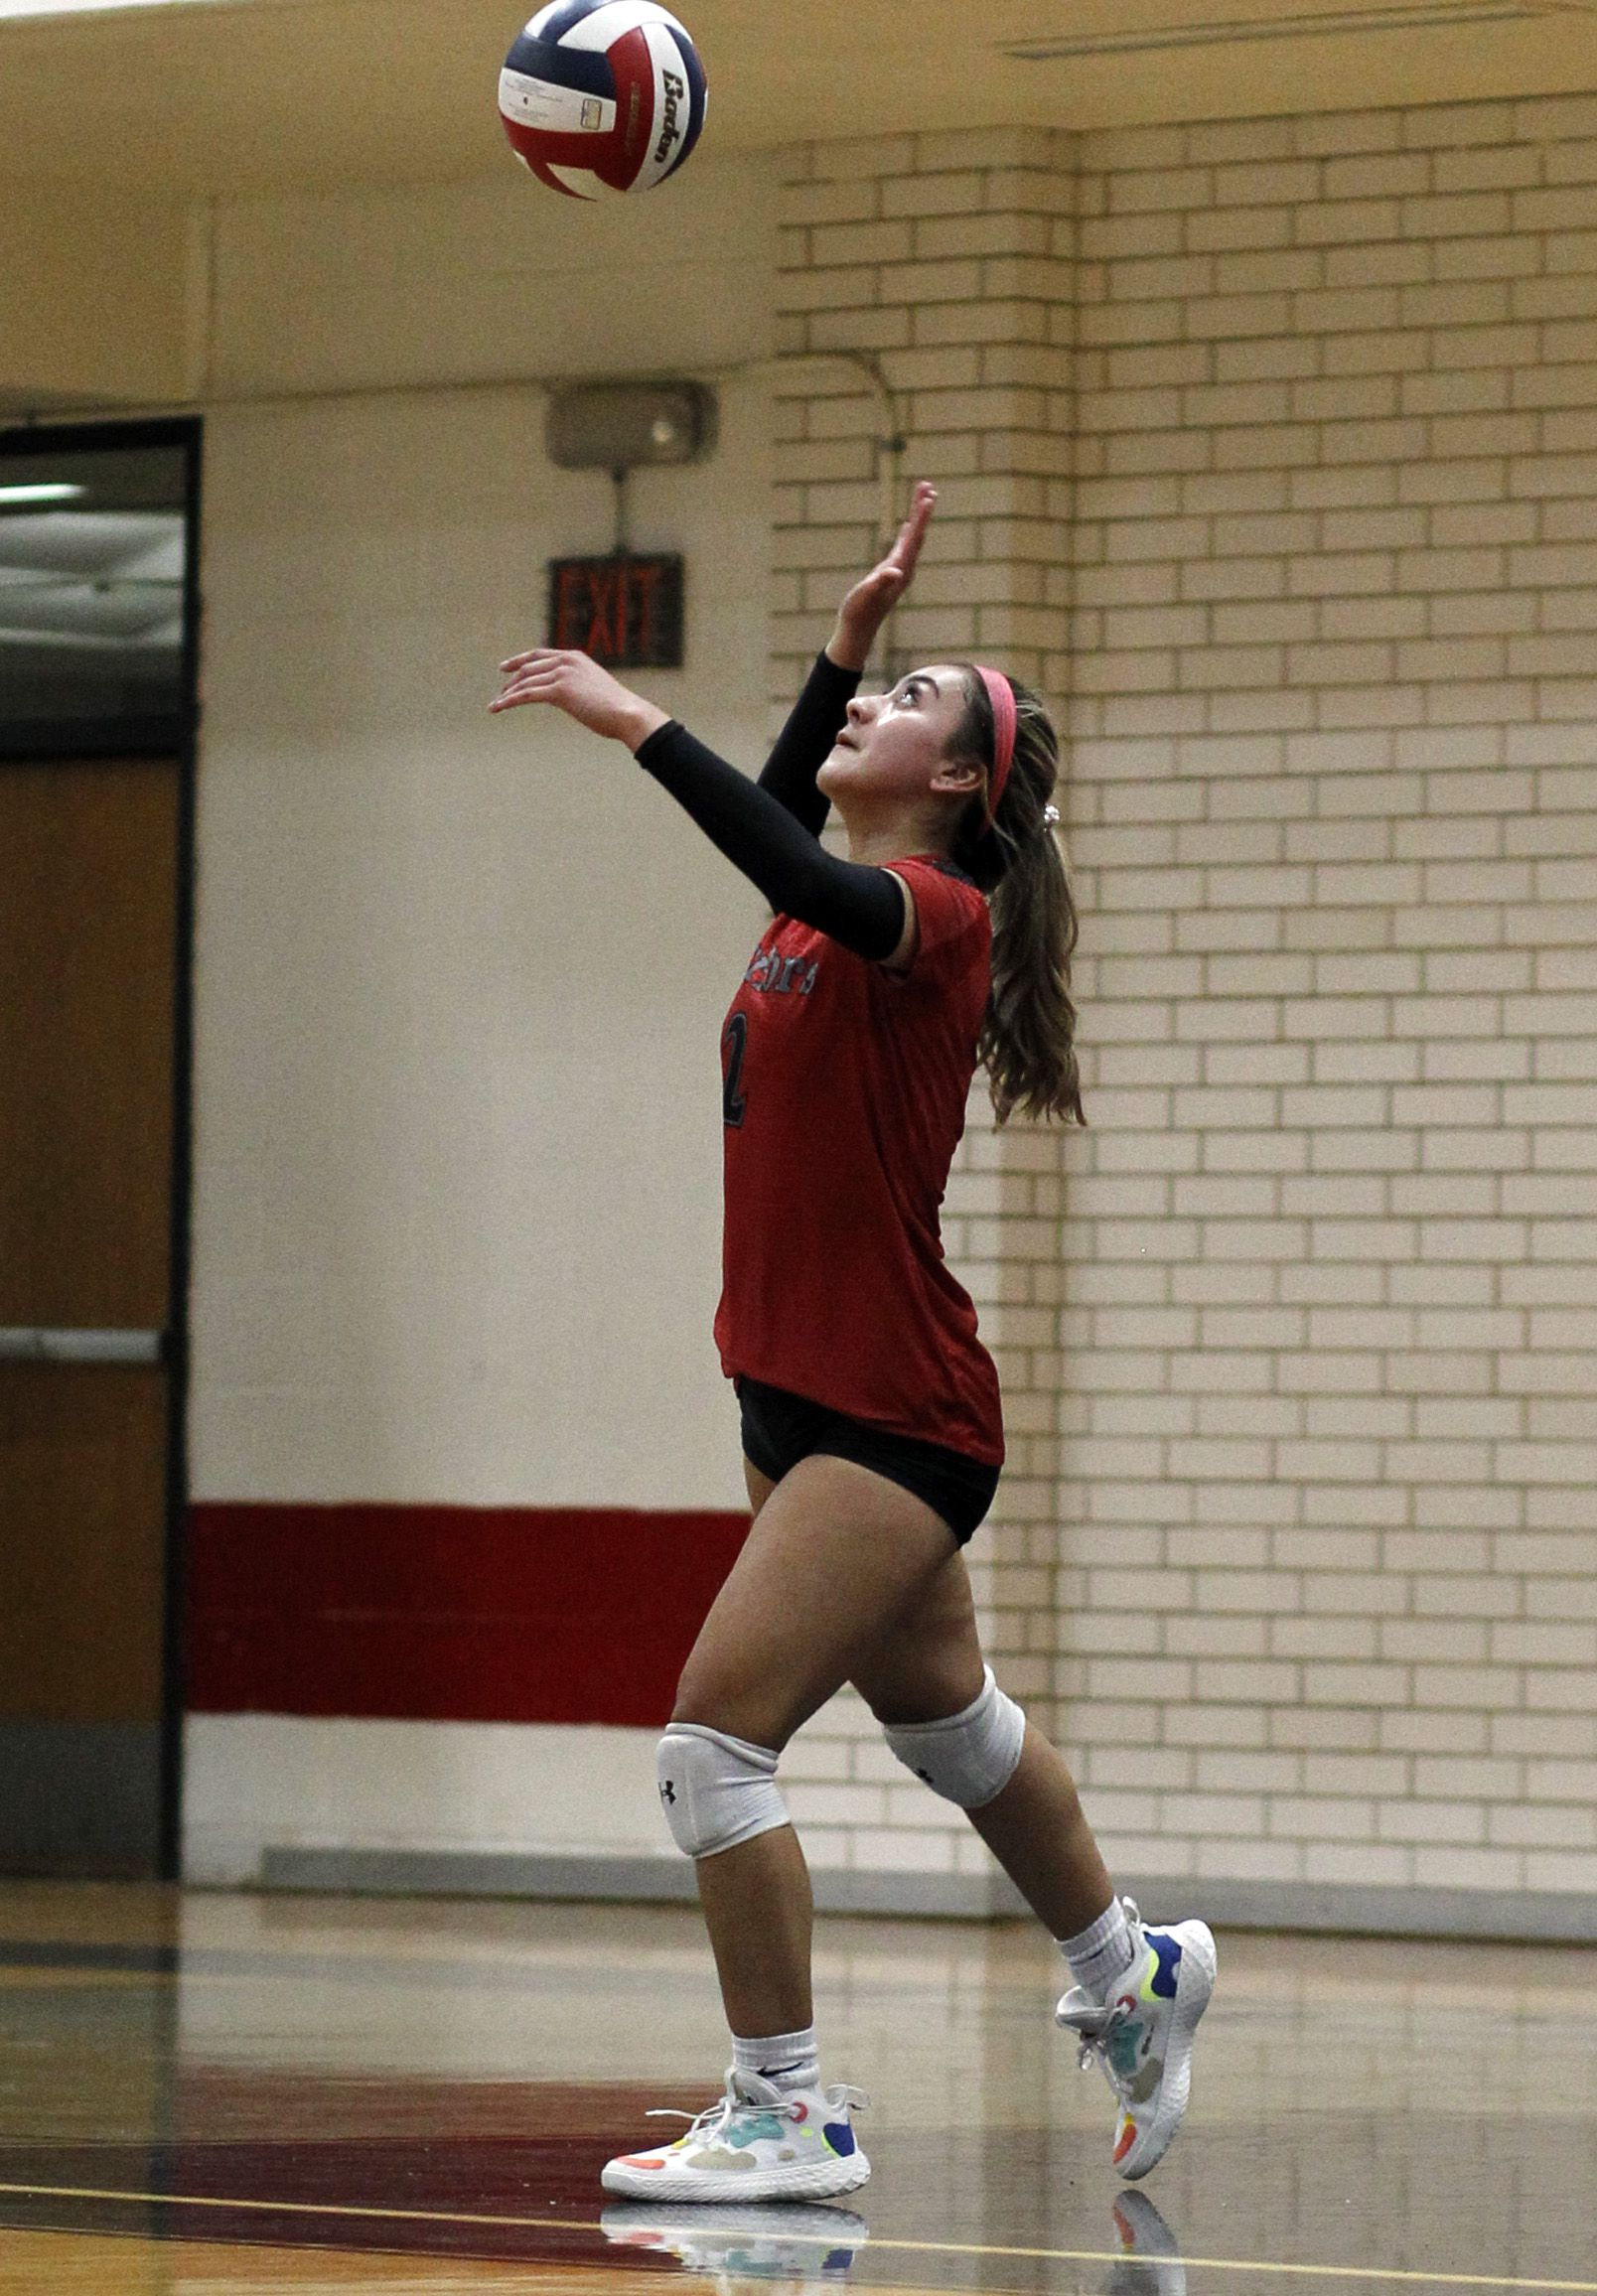 South Grand Prairie's Kylie Ramirez (2) serves during the 3rd set of their match against Arlington Martin. The two teams played their volleyball match at Arlington Martin High School in Arlington on September 14, 2021. (Steve Hamm/ Special Contributor)